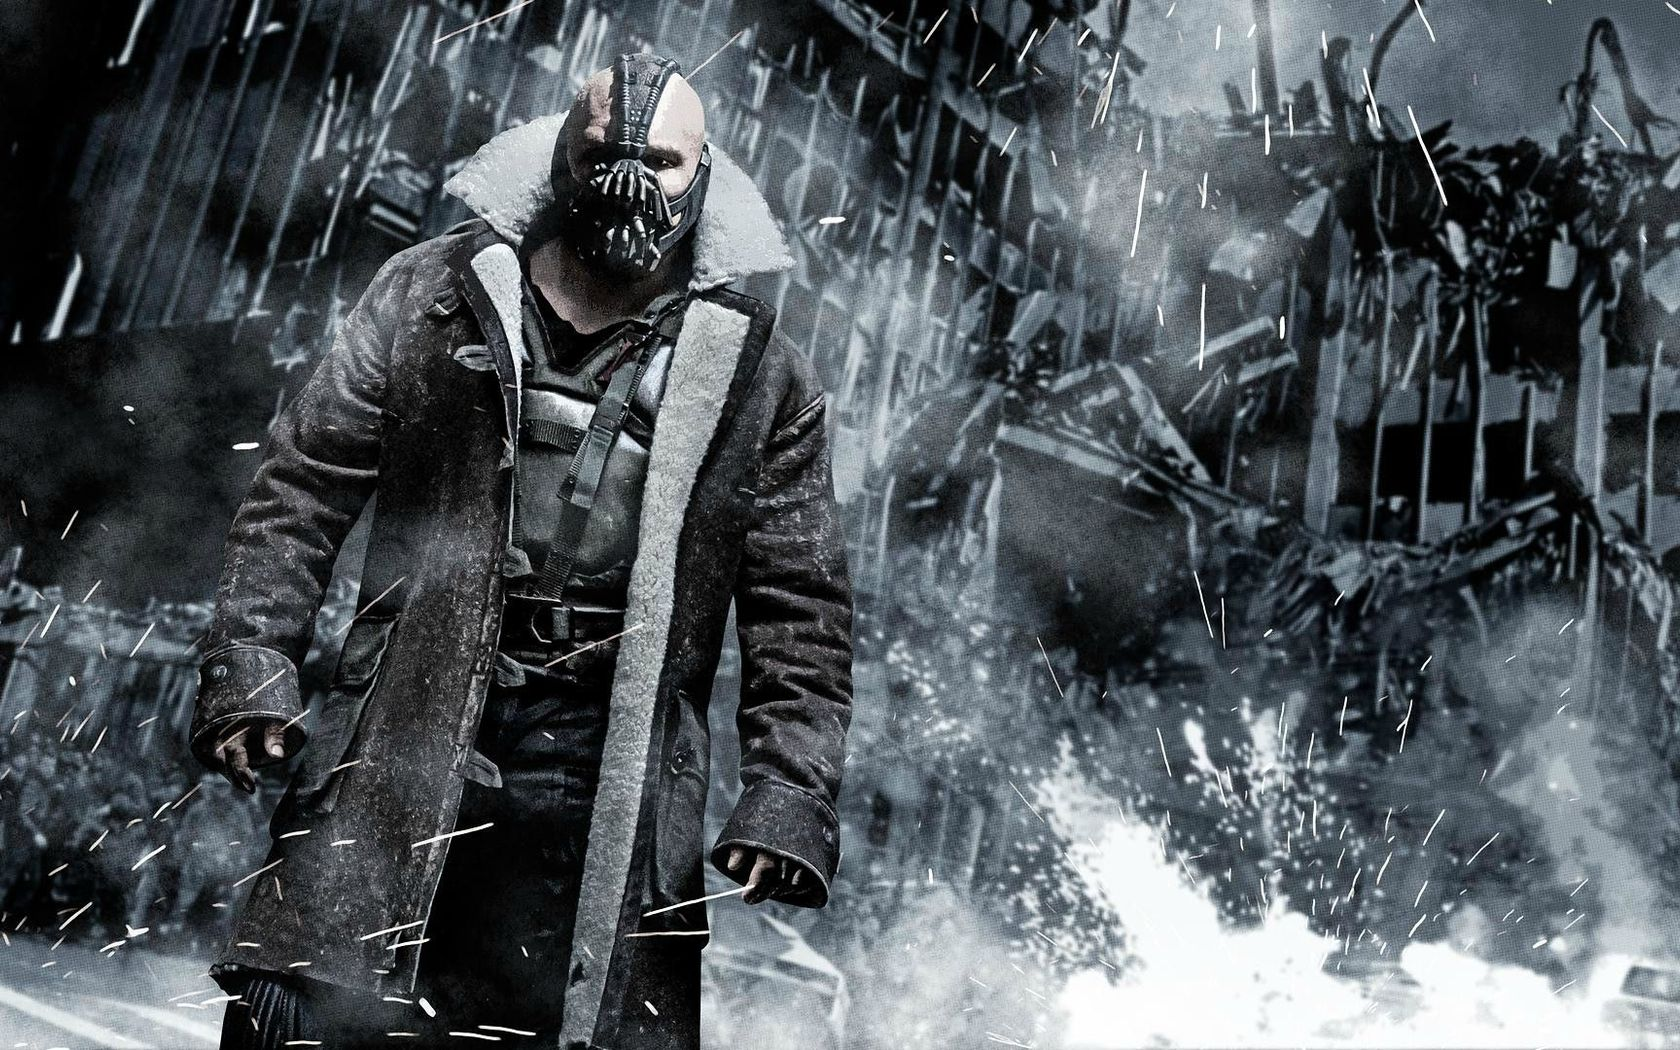 Download Bane The Dark Knight Rises Wallpaper 1680x1050